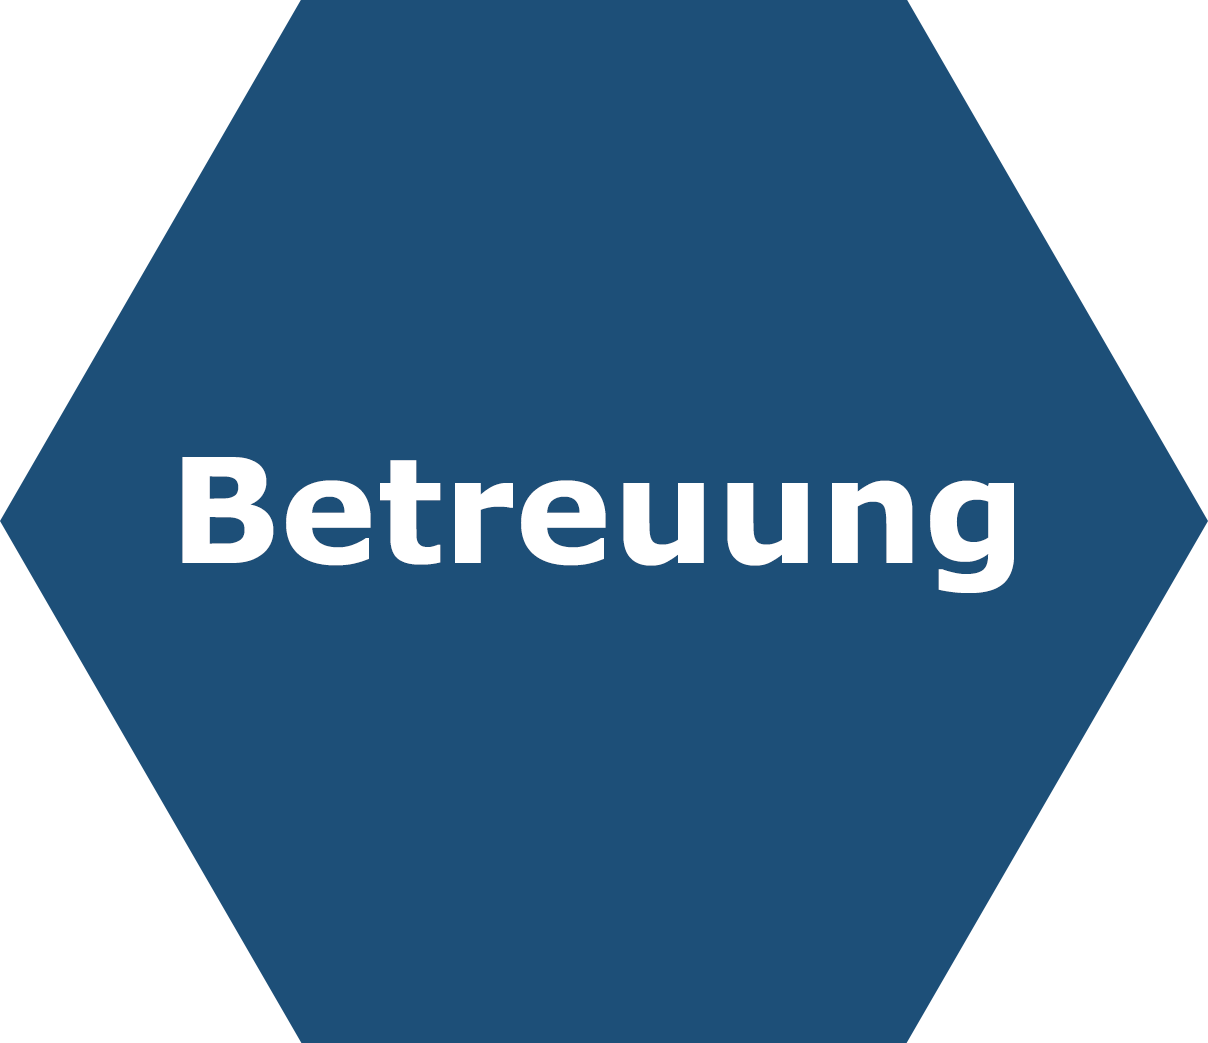 betreuung.png